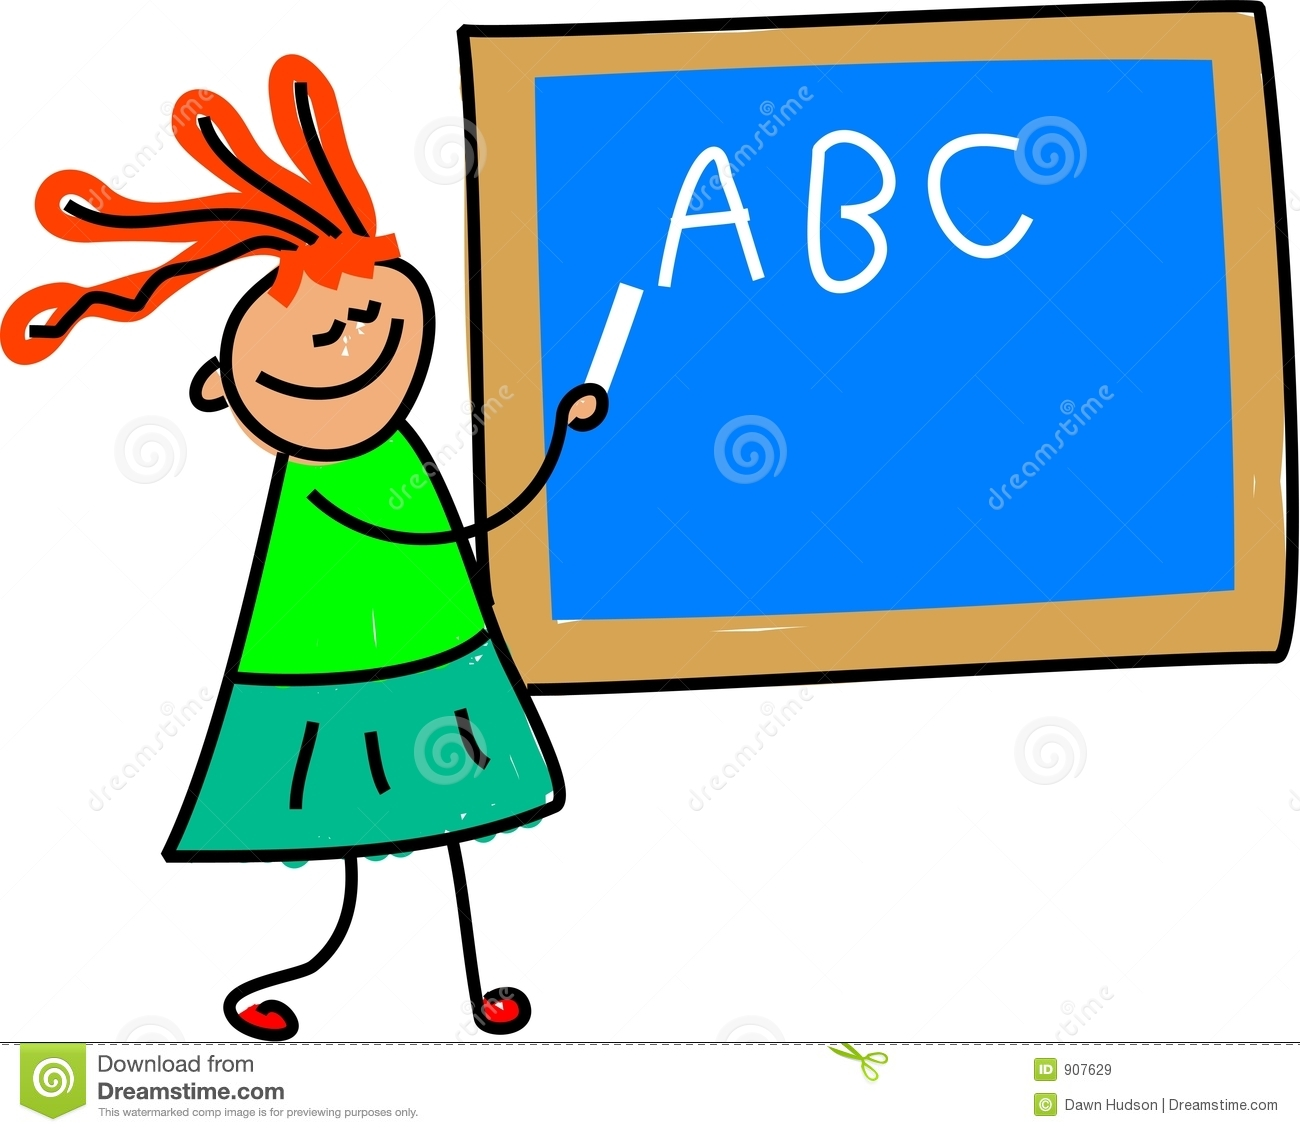 teacher kid royalty free stock images   image 907629